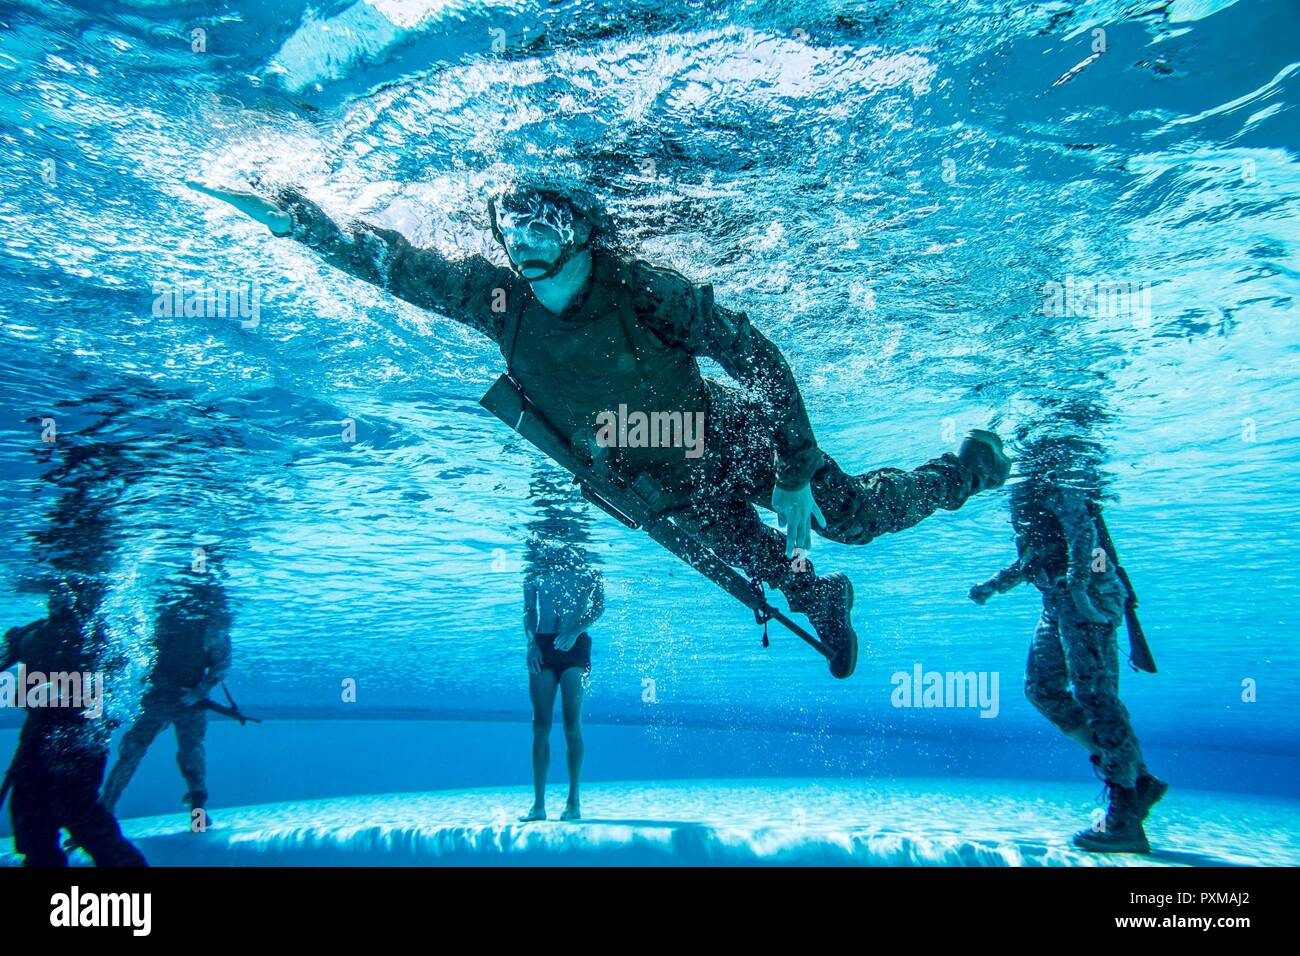 A U.S. Marine with 1st Marine Logistics group participates in the water survival advanced course on Camp Pendleton, Calif., June 14, 2017. The purpose of the water survival course is to strengthen the individual Marine's self-preservation and rescue skills in water. 1st MLG is home to multiple military occupations that work together to provide support to each element of the 1st Marine Expeditionary Force through logistics beyond the capabilities of the supported units. Stock Photo